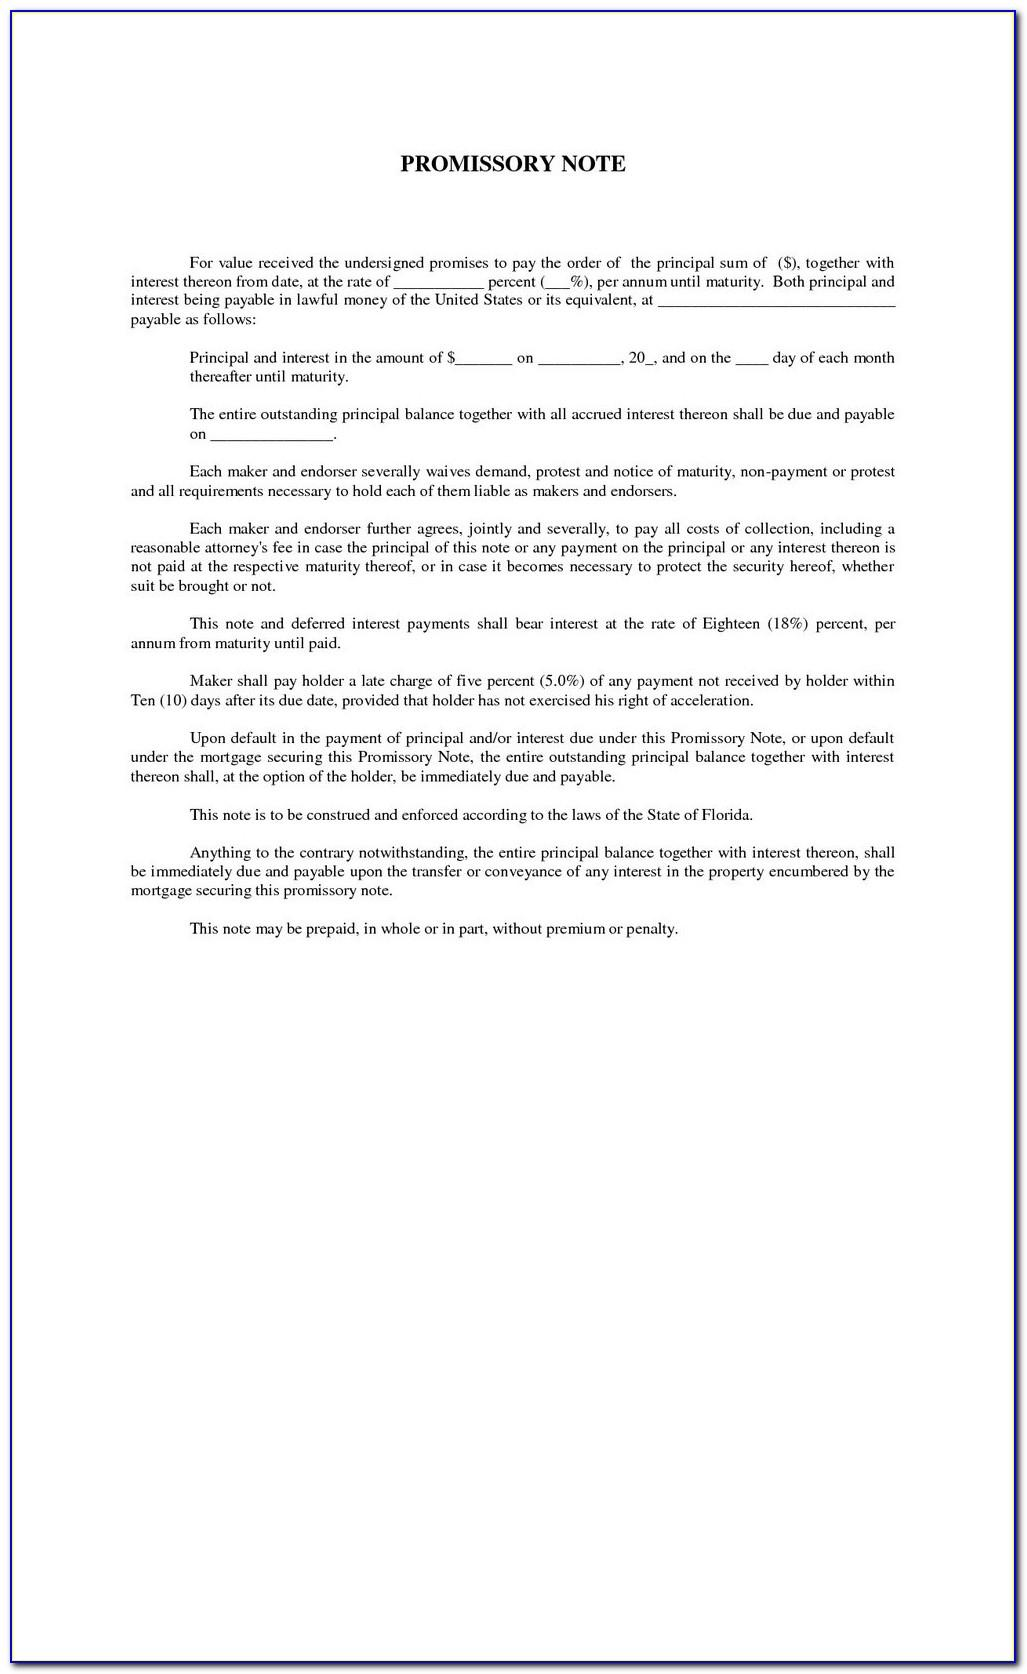 New York State Promissory Note Template